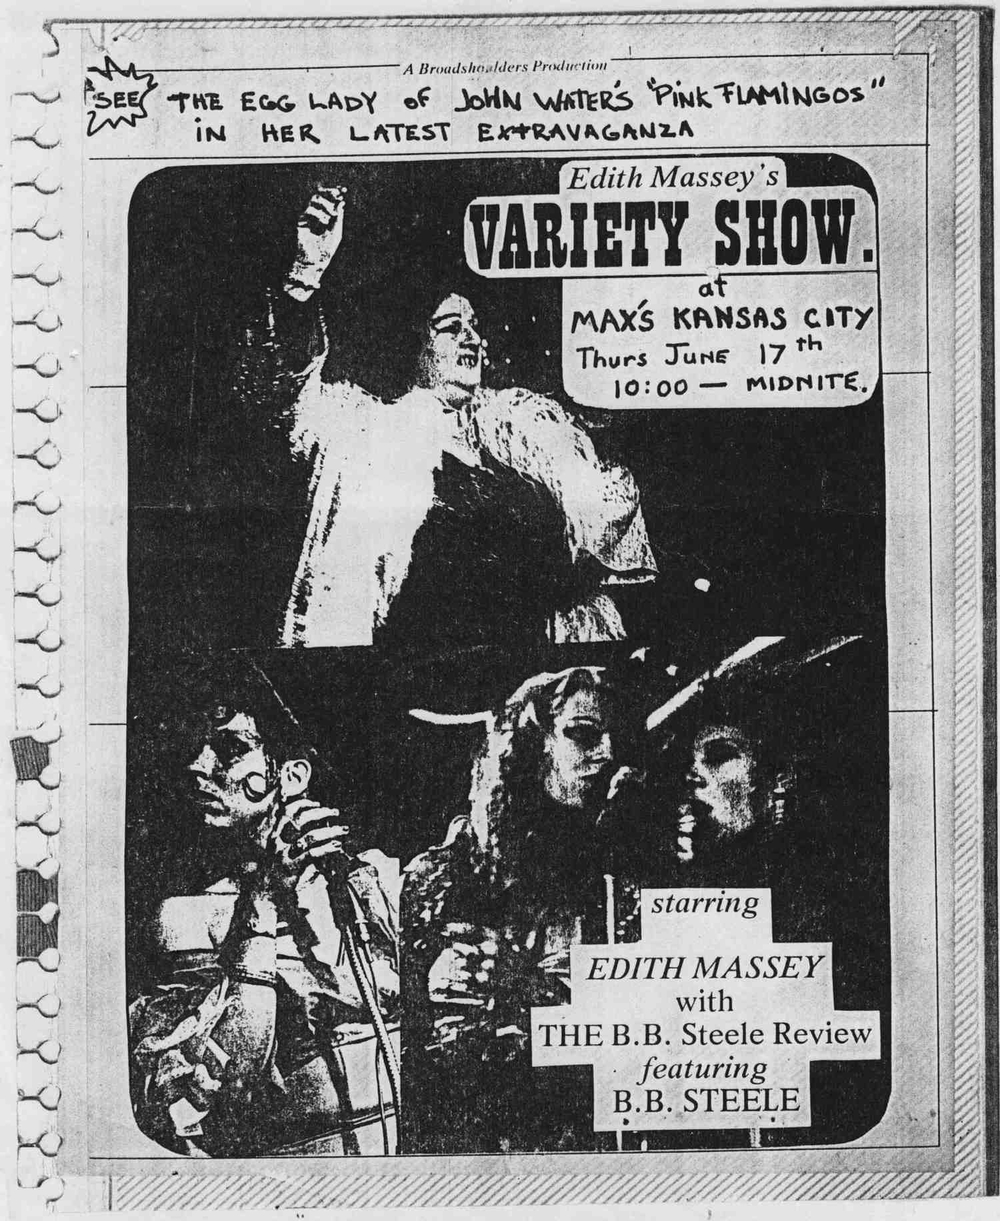 Flyer for The B.B. Steele Review, 1975